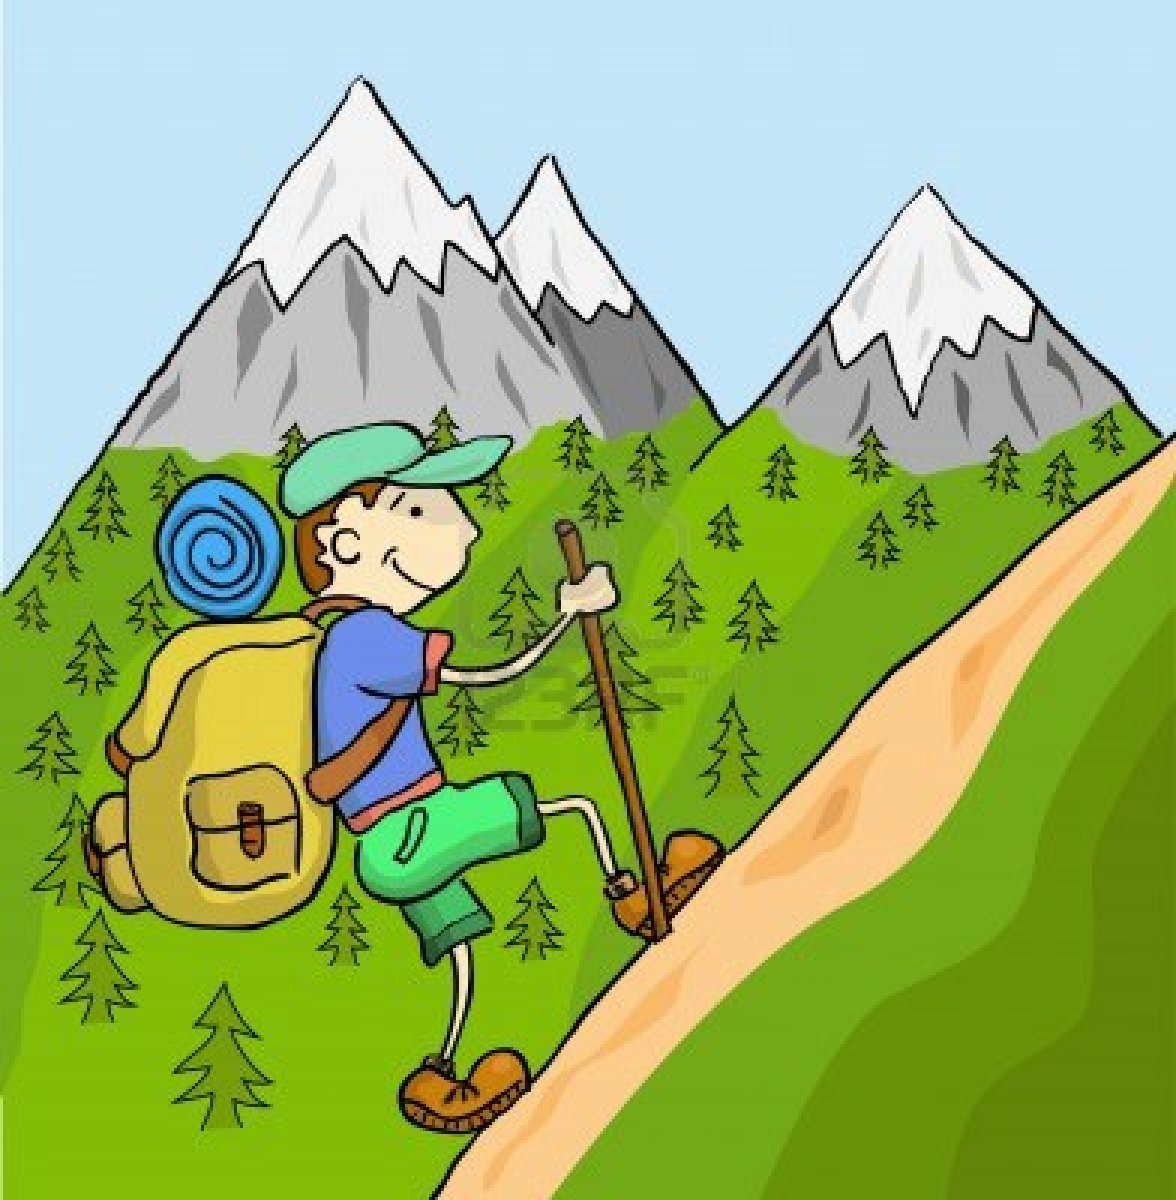 Man climbing mountain clipart.